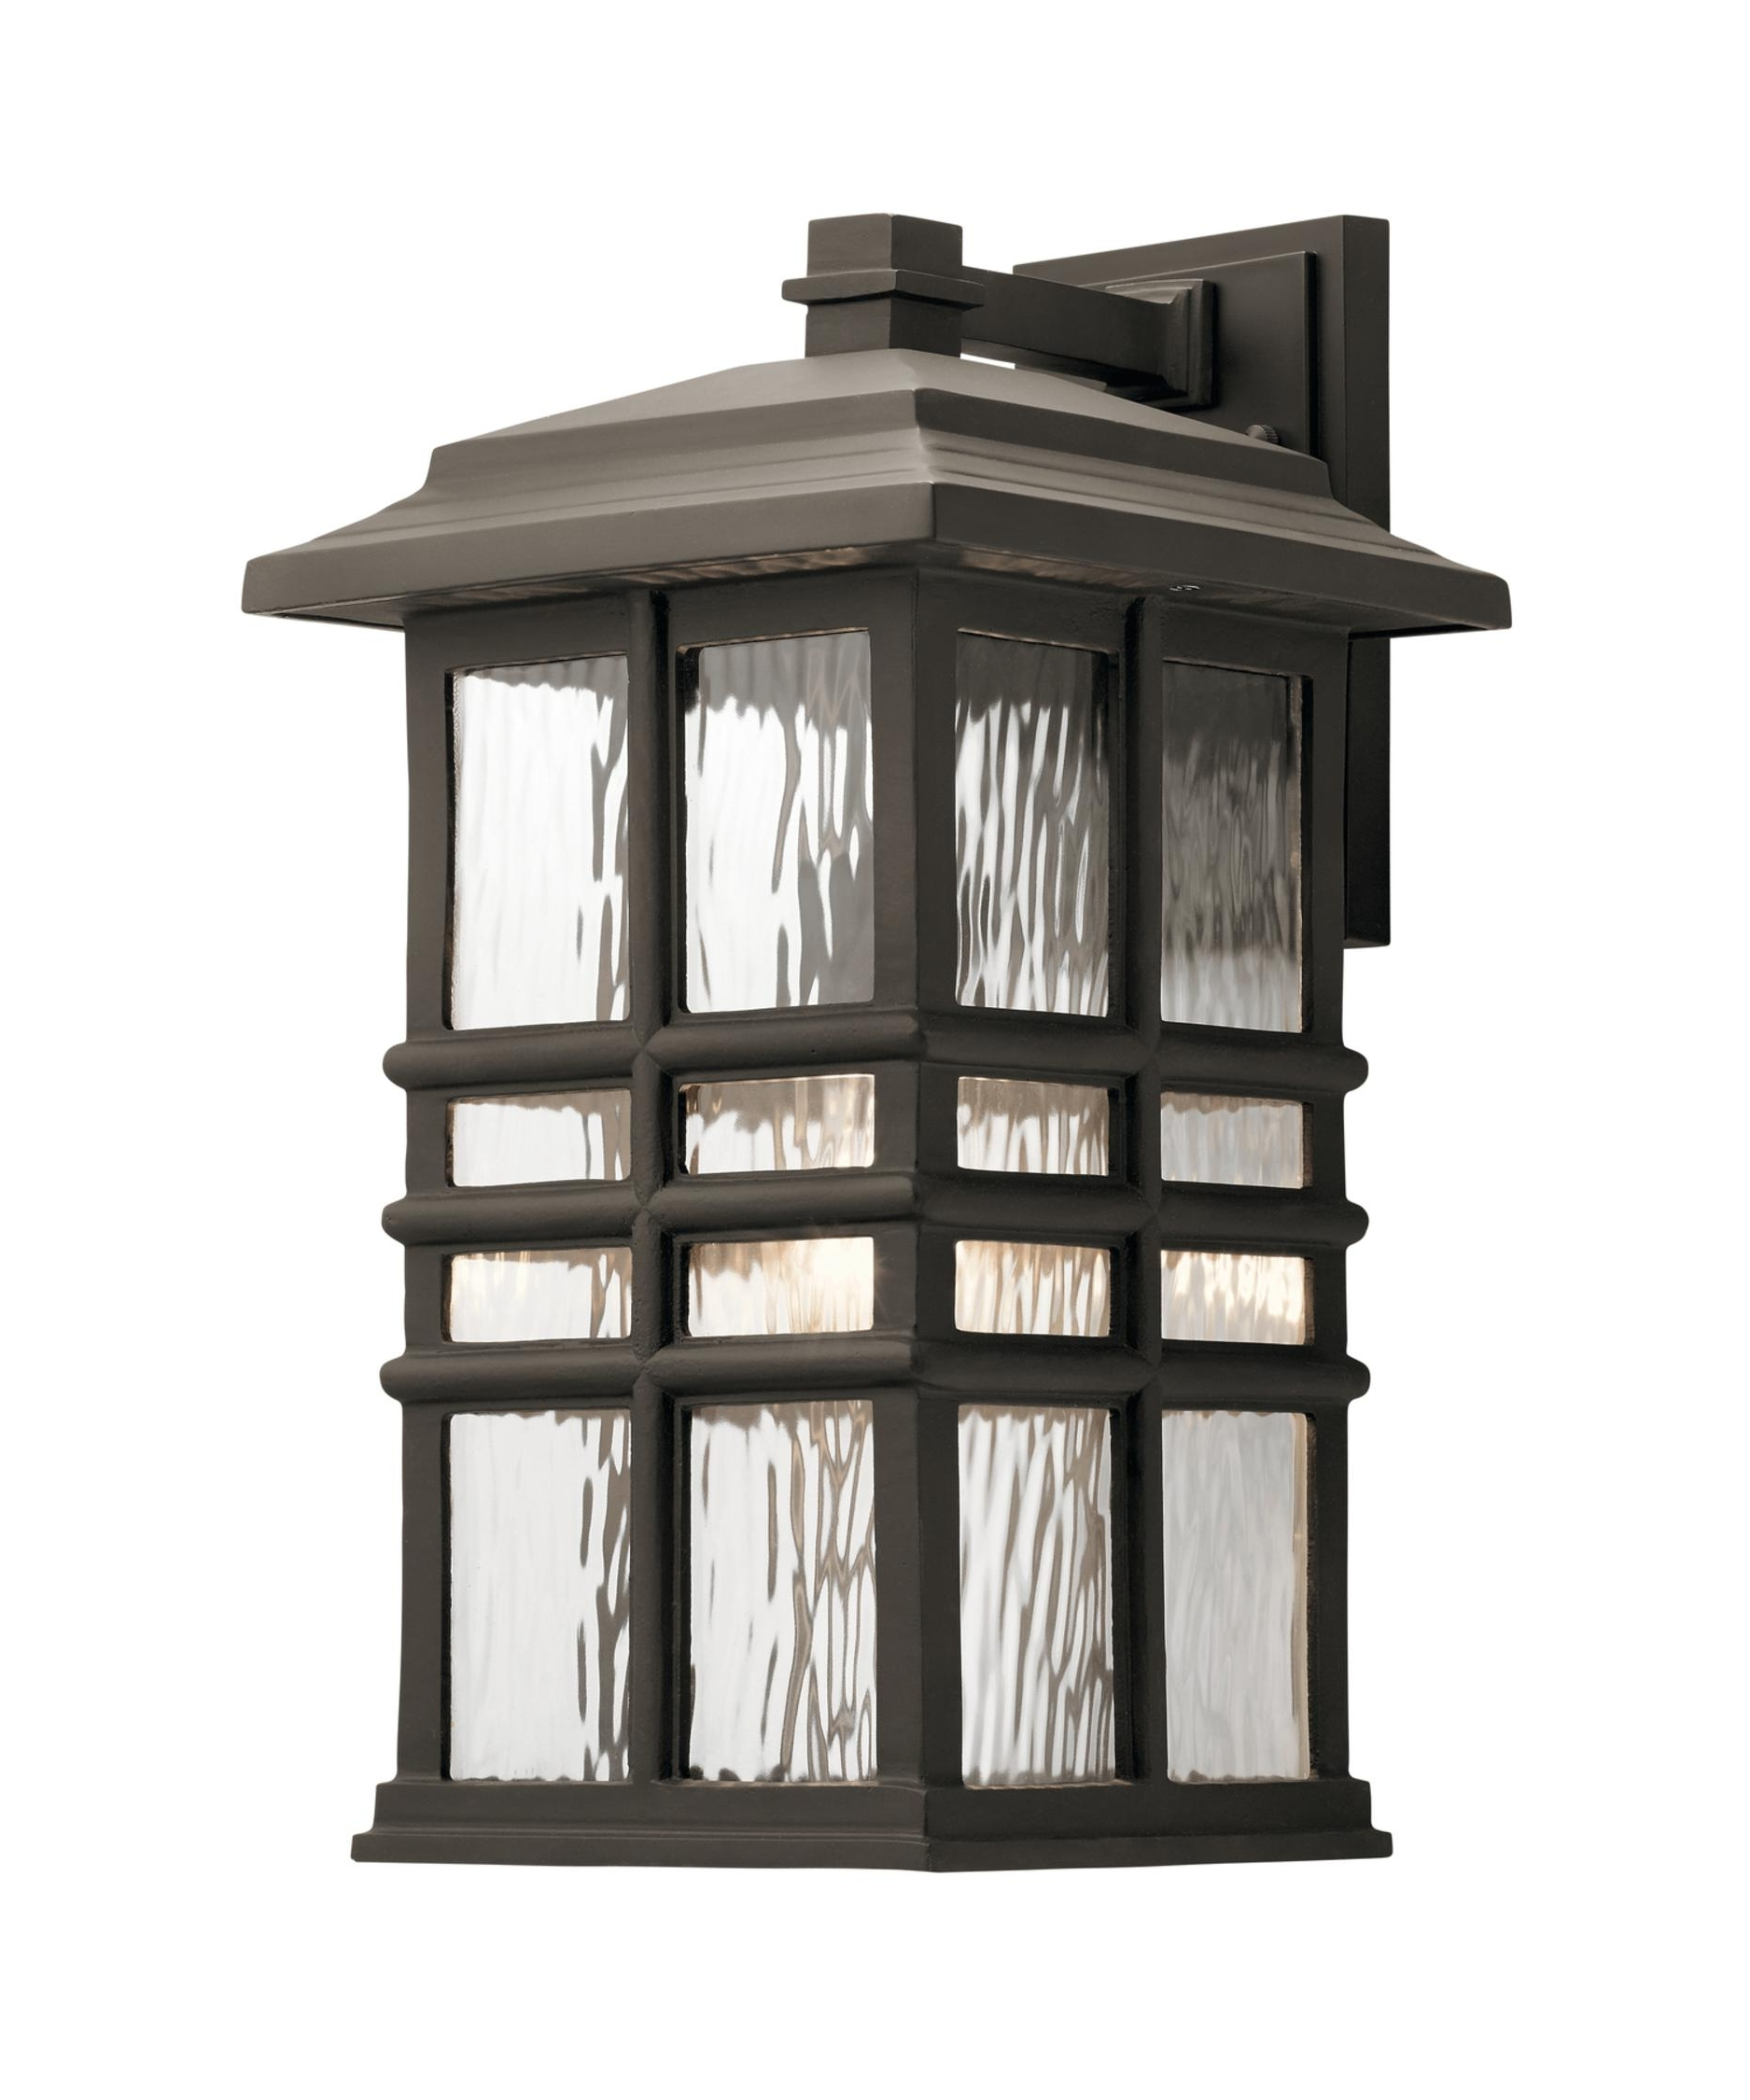 Kichler 49831 Beacon Square 10 Inch Wide 1 Light Outdoor Wall Light Pertaining To Recent Beacon Outdoor Wall Lighting (View 9 of 20)